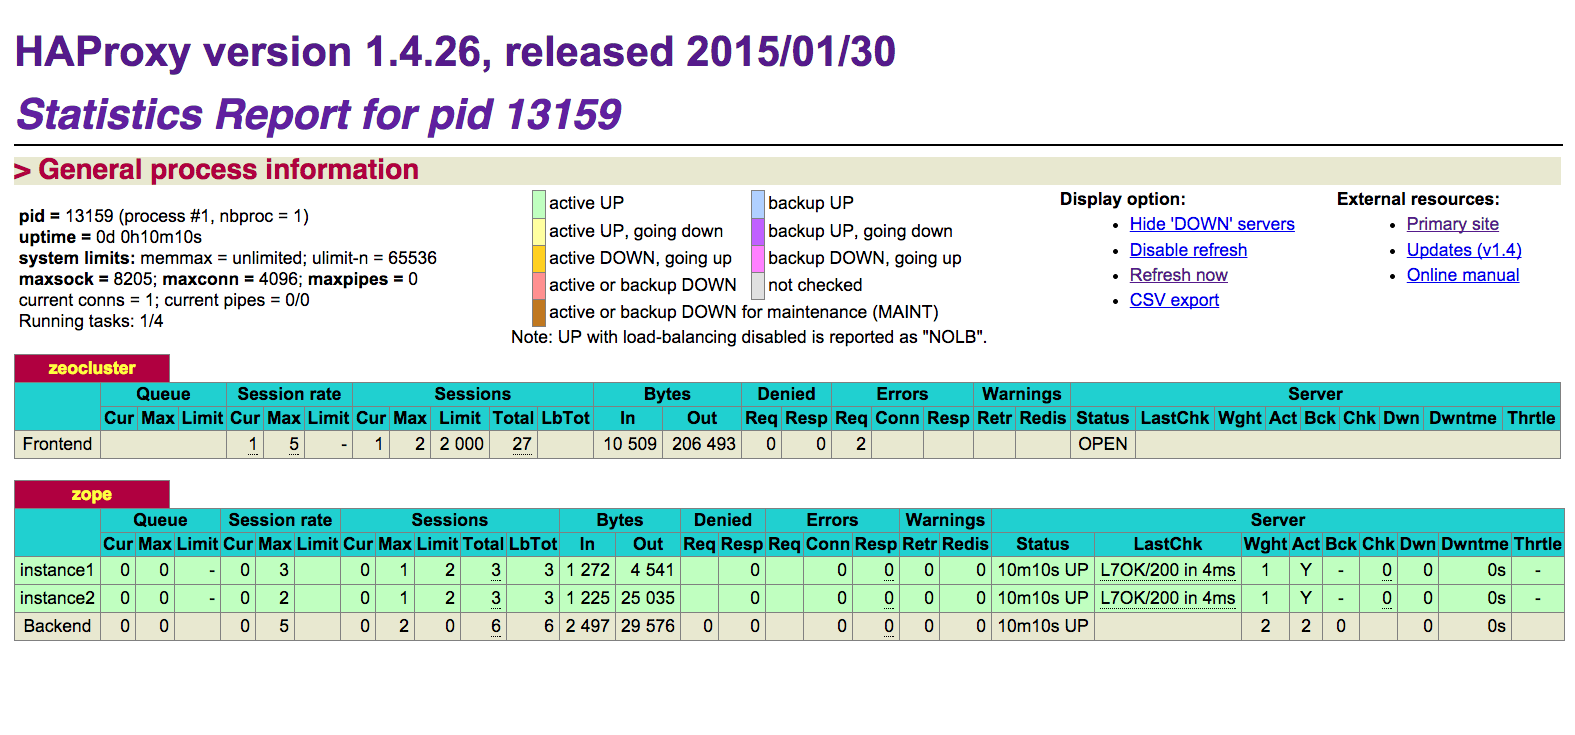 haproxy-statistics-report.png